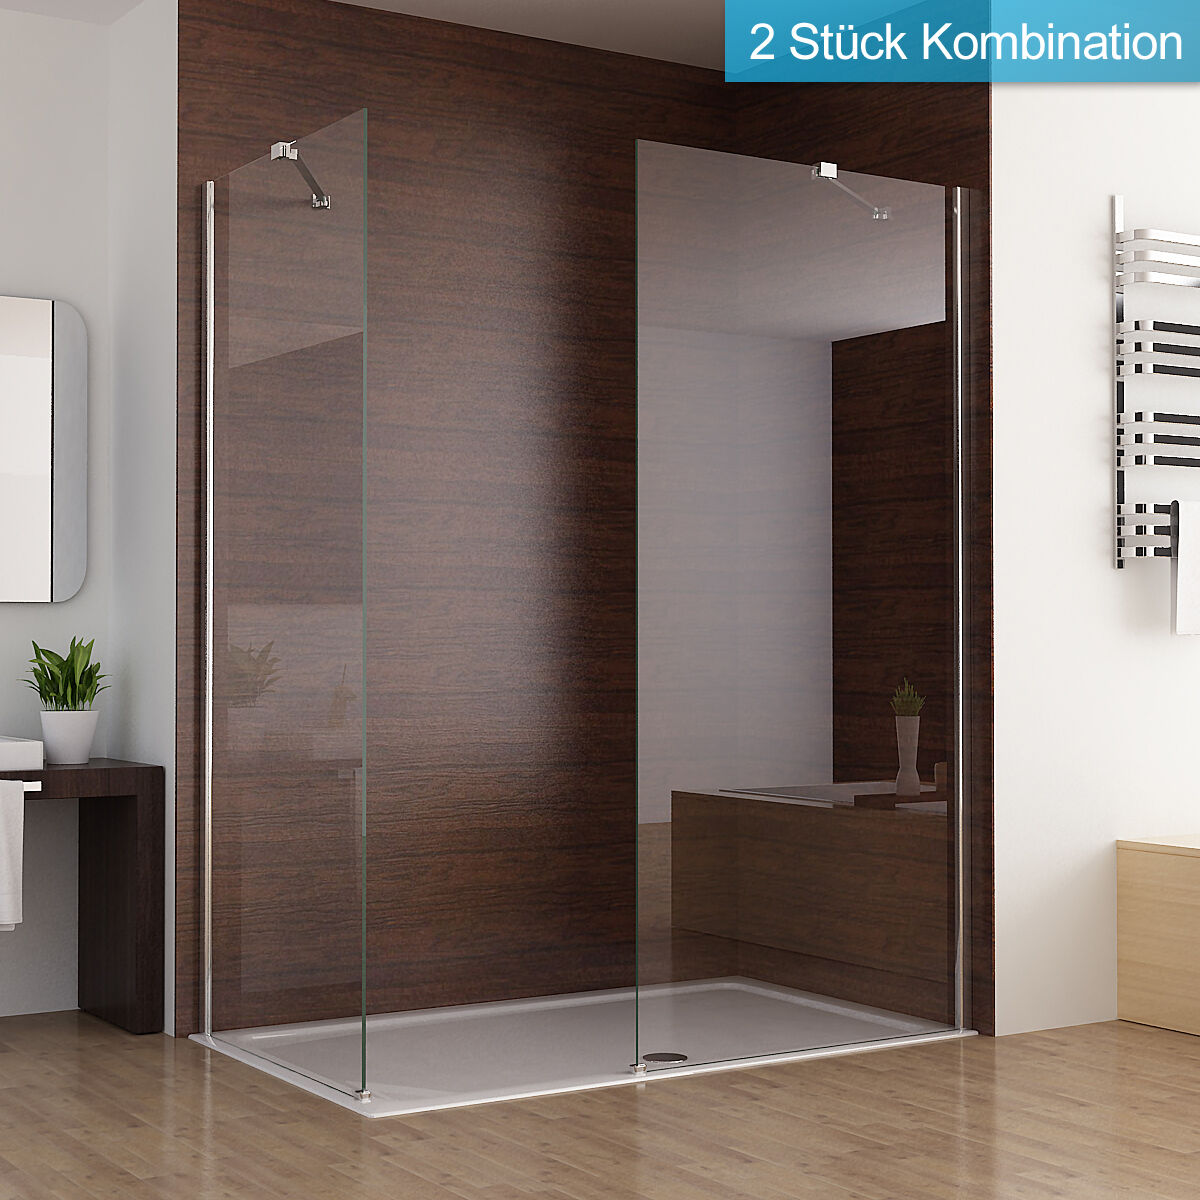 walk in dusche duschabtrennung duschwand seitenwand nano glas 80 x 195 cm sa ebay. Black Bedroom Furniture Sets. Home Design Ideas